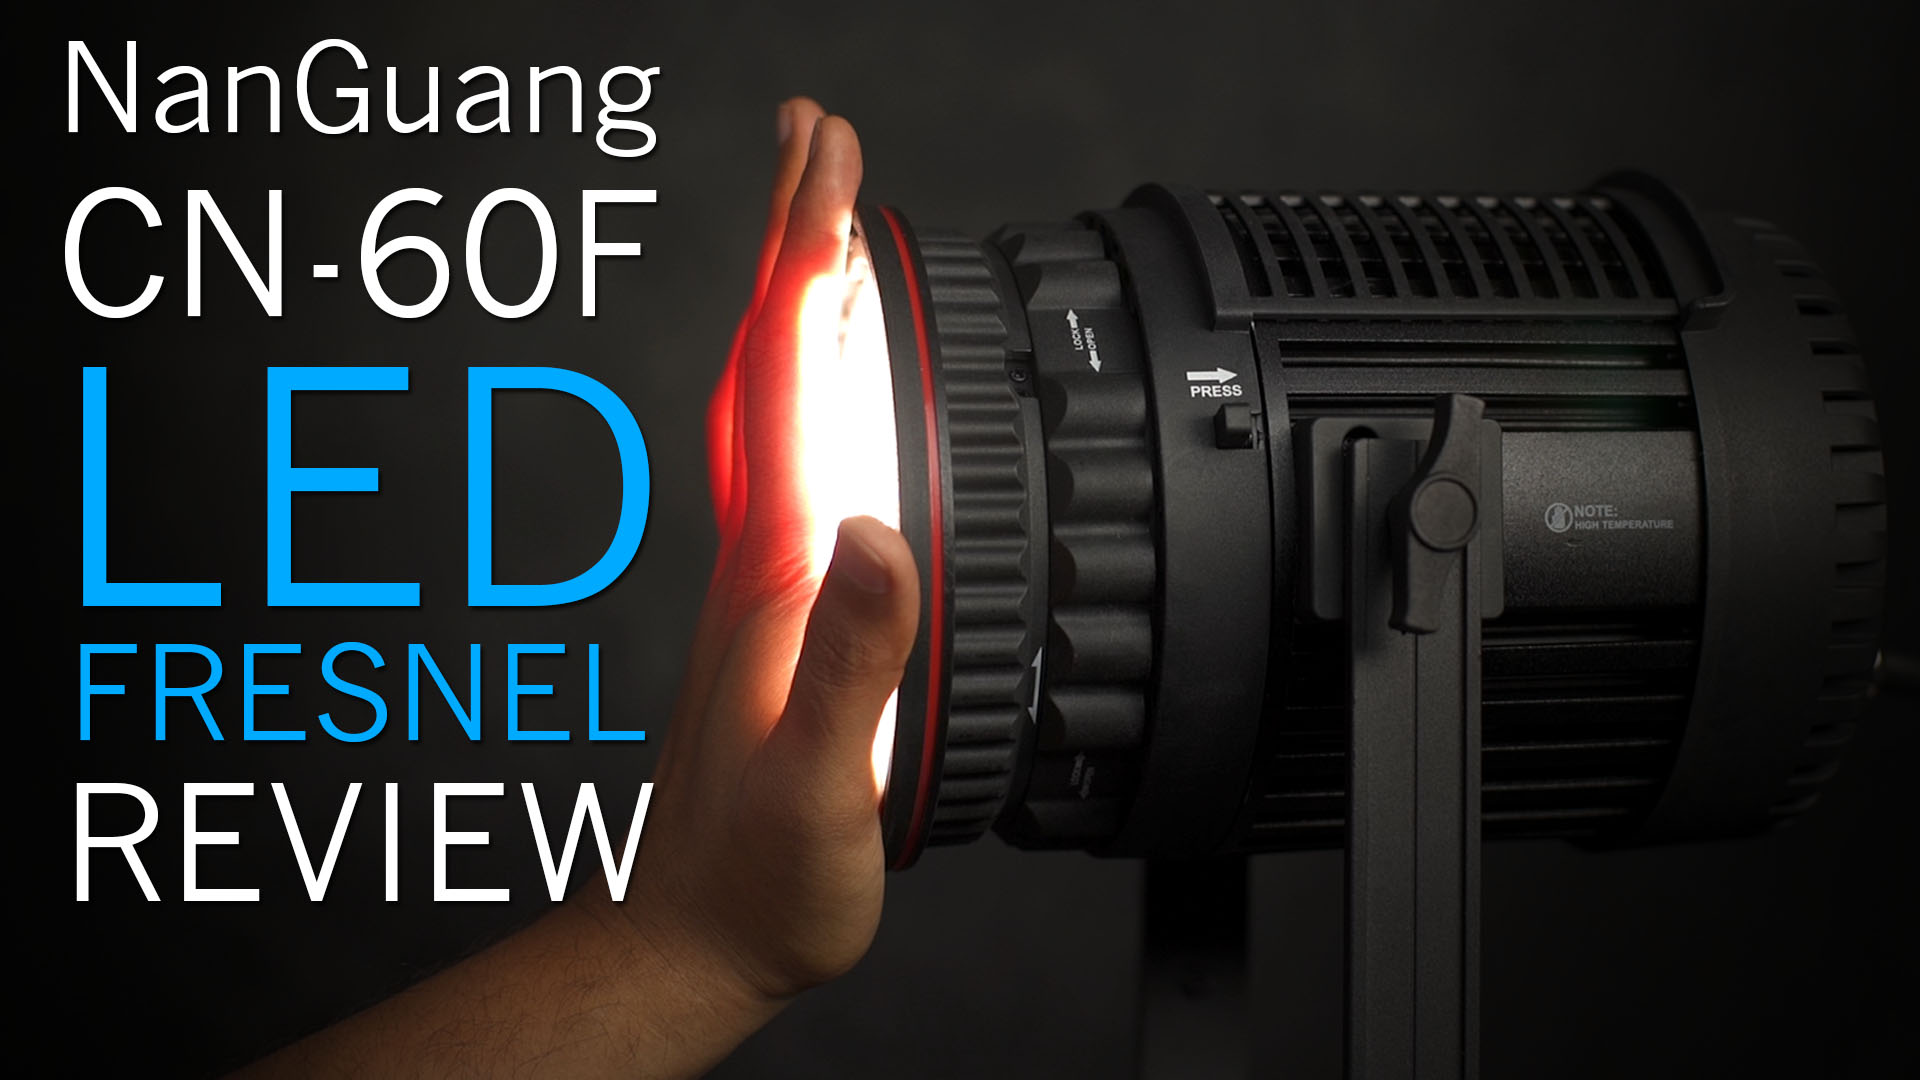 NanGuang CN-60F LED Fresnel Review